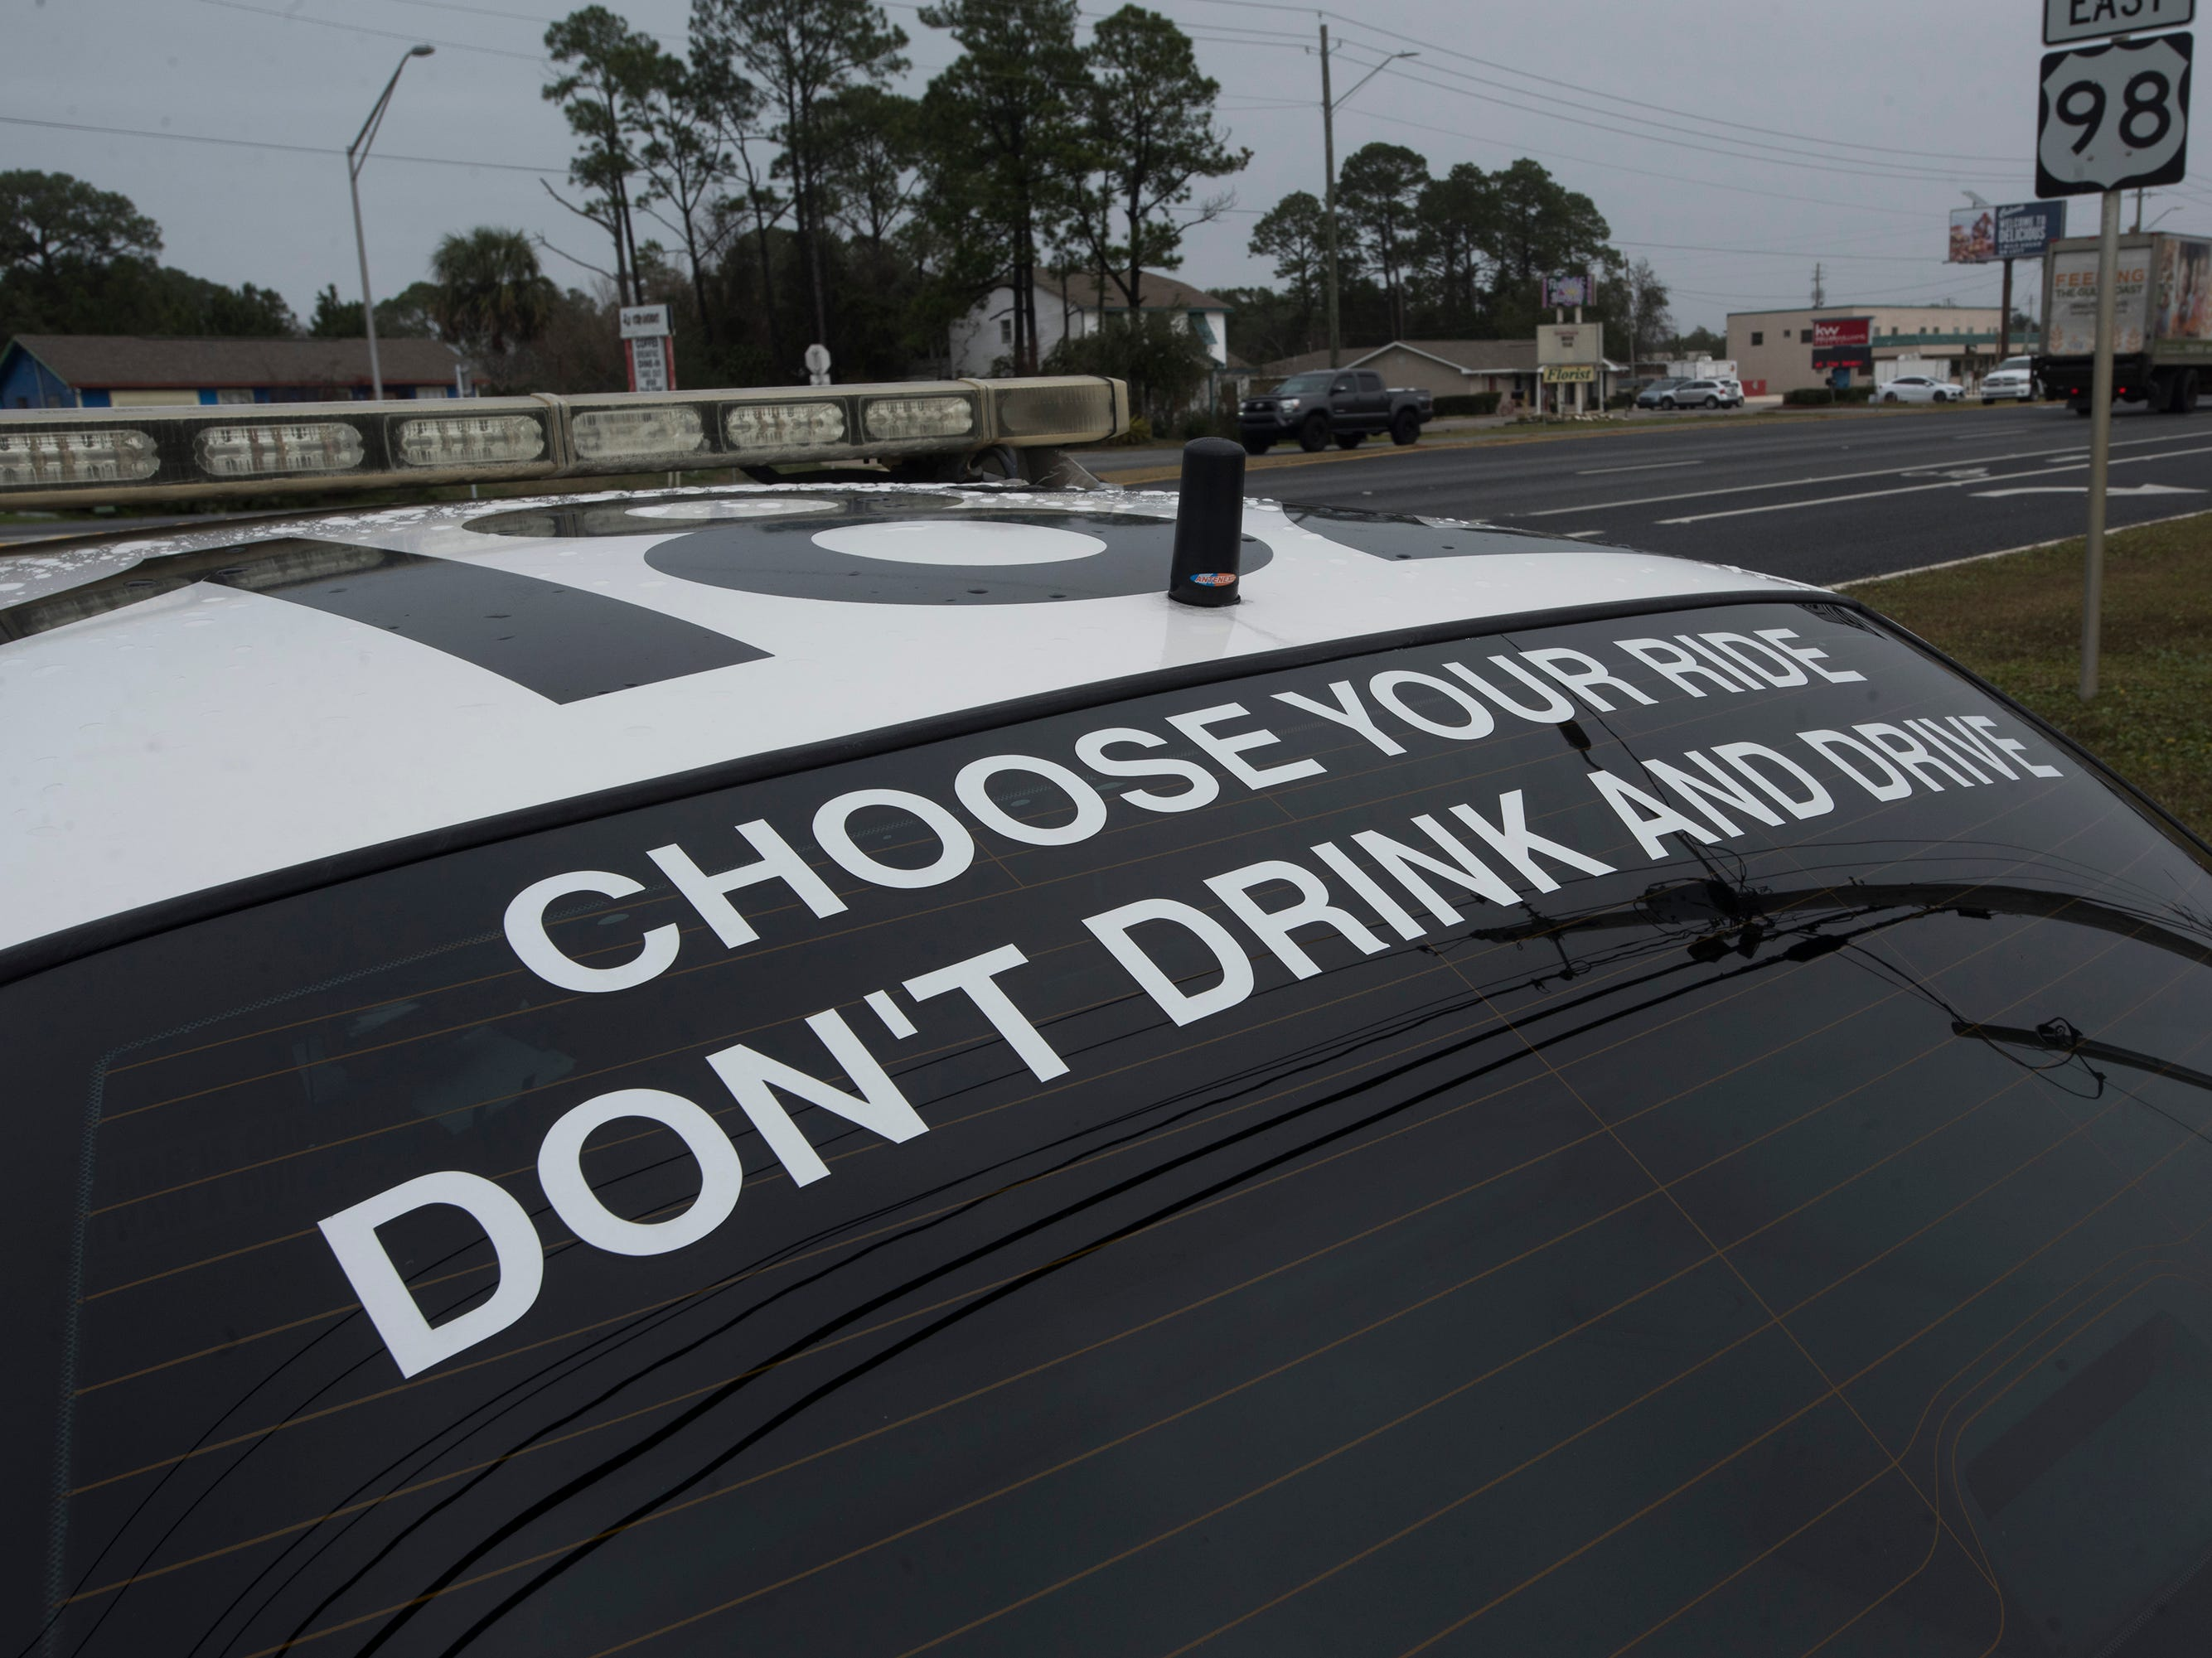 As area prepares for the New Year, the Santa Rosa Sheriff's Office has placed this reminder along the roadside on Hwy 98 of the cost of a DUI on Monday, Dec. 31, 2018.